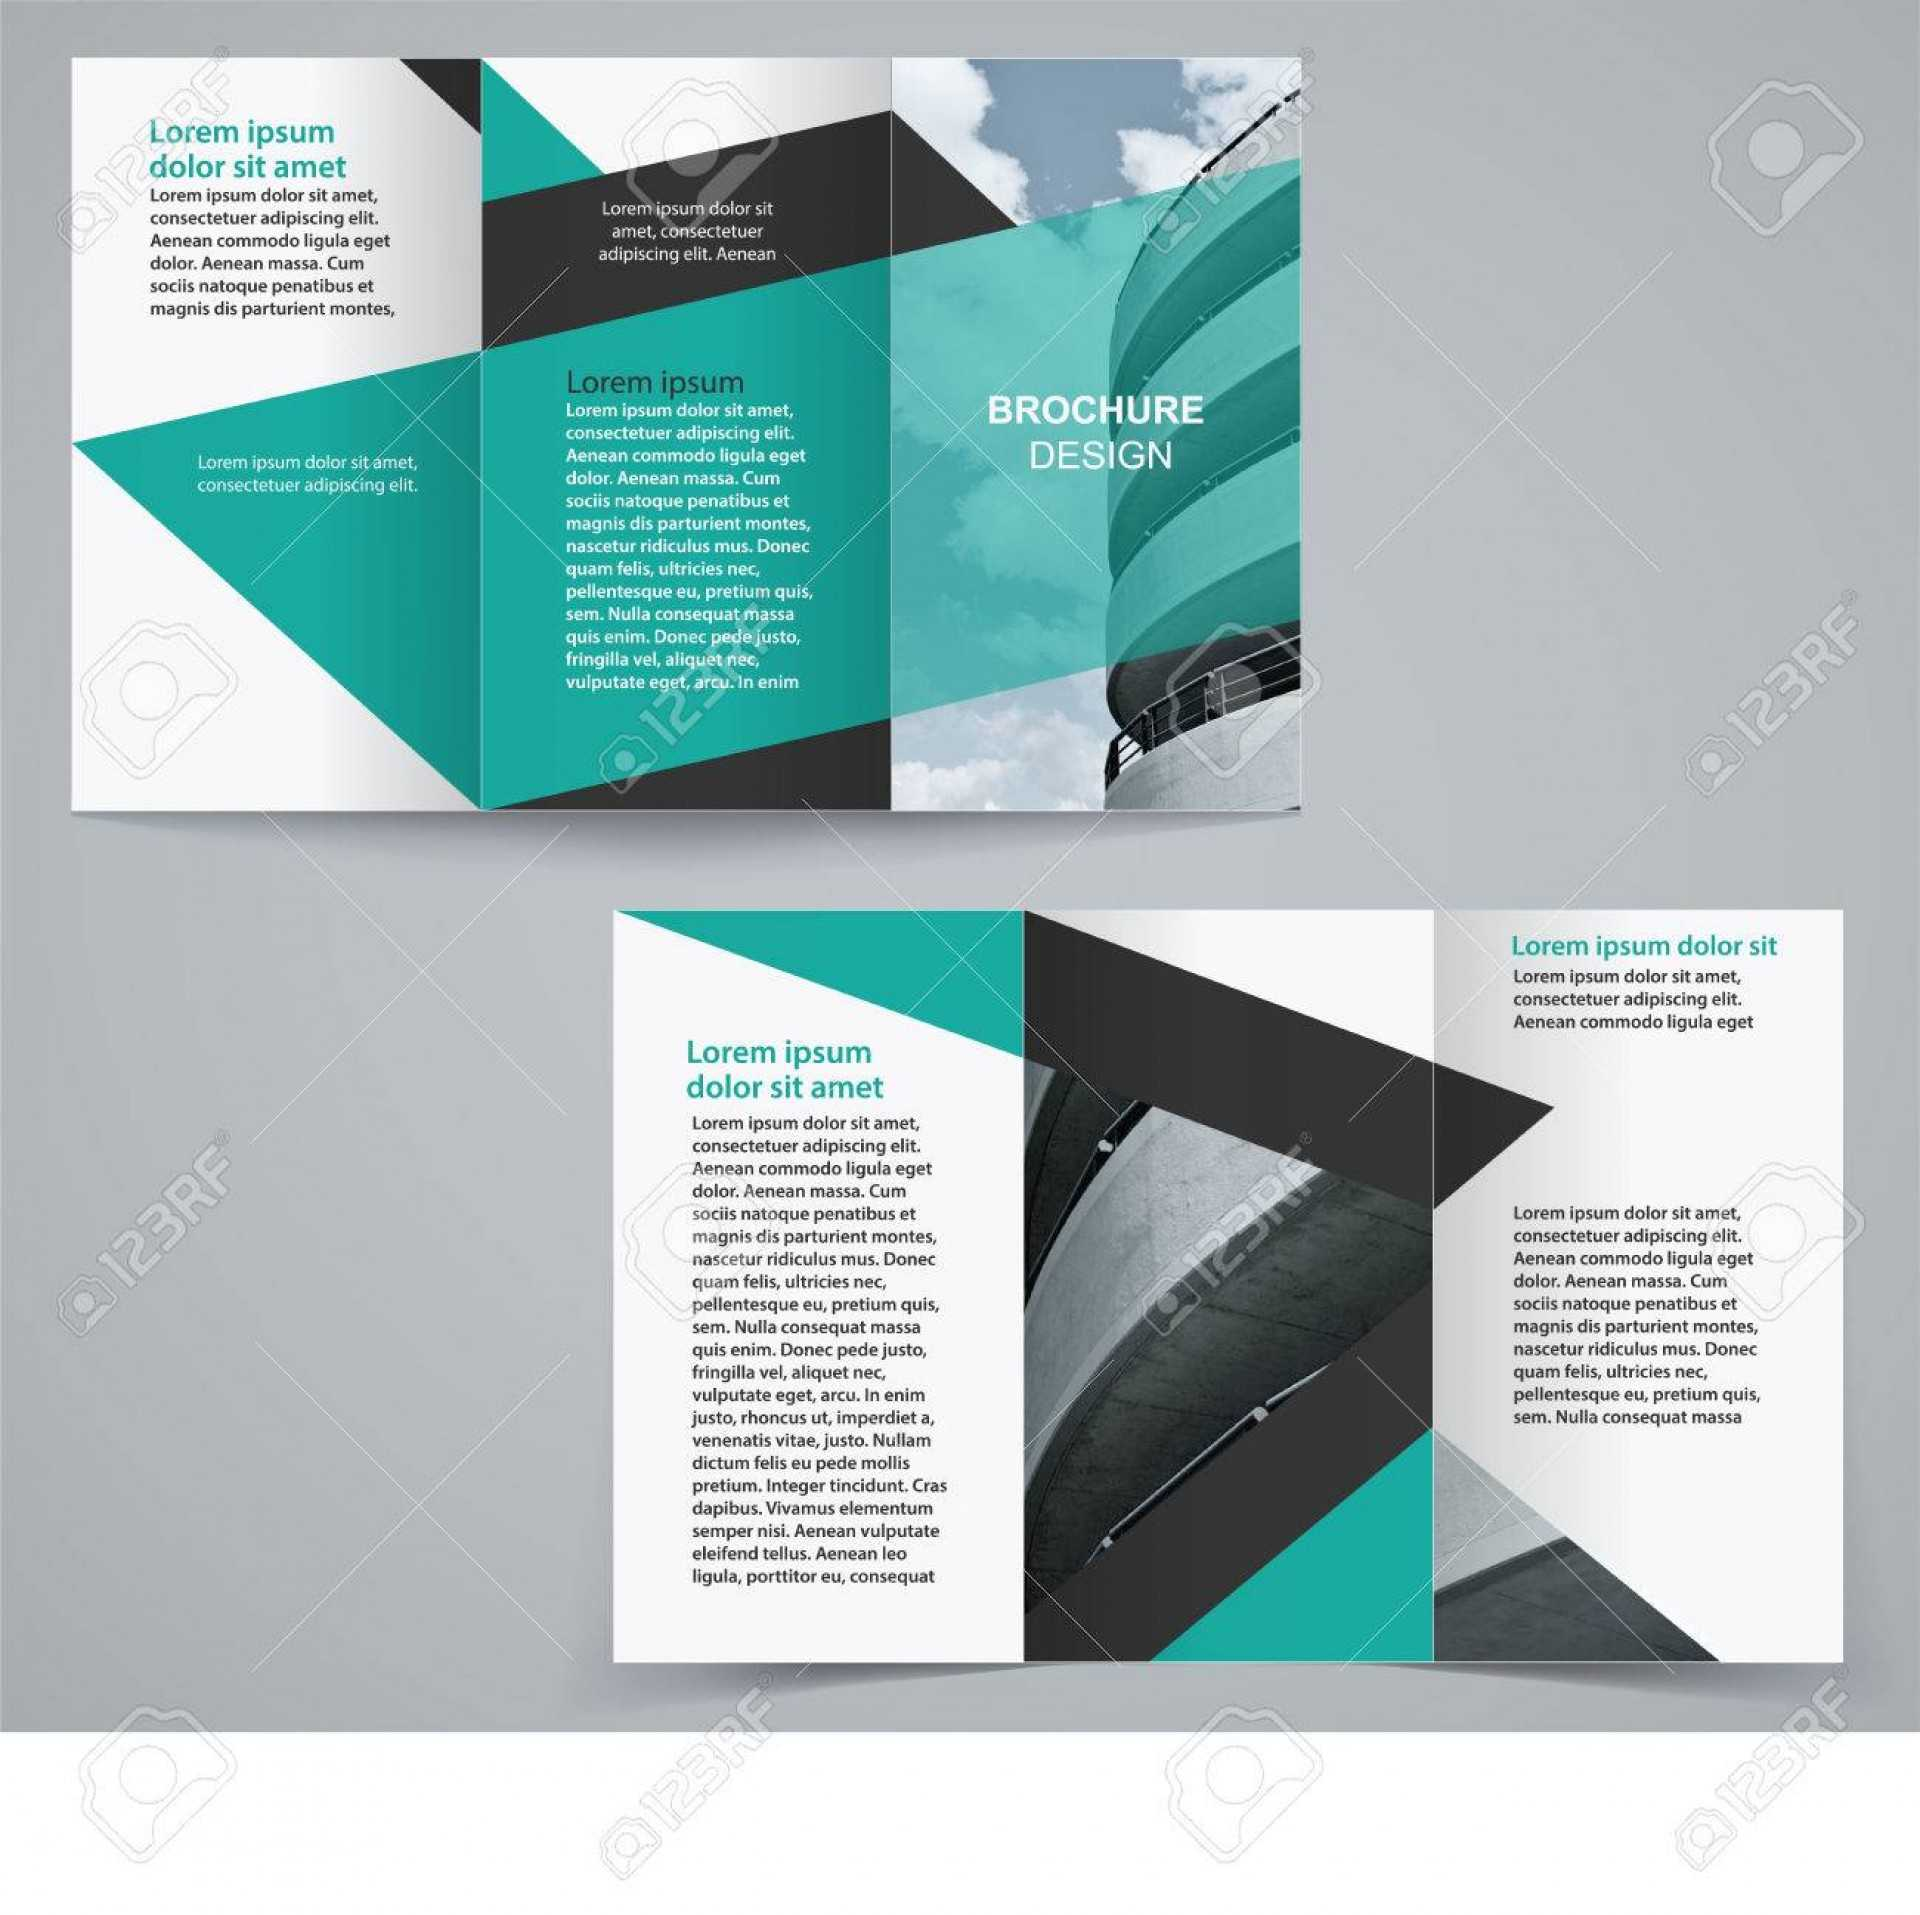 004 Double Sided Brochure Template Ideas Rare Two Word Regarding Double Sided Tri Fold Brochure Template